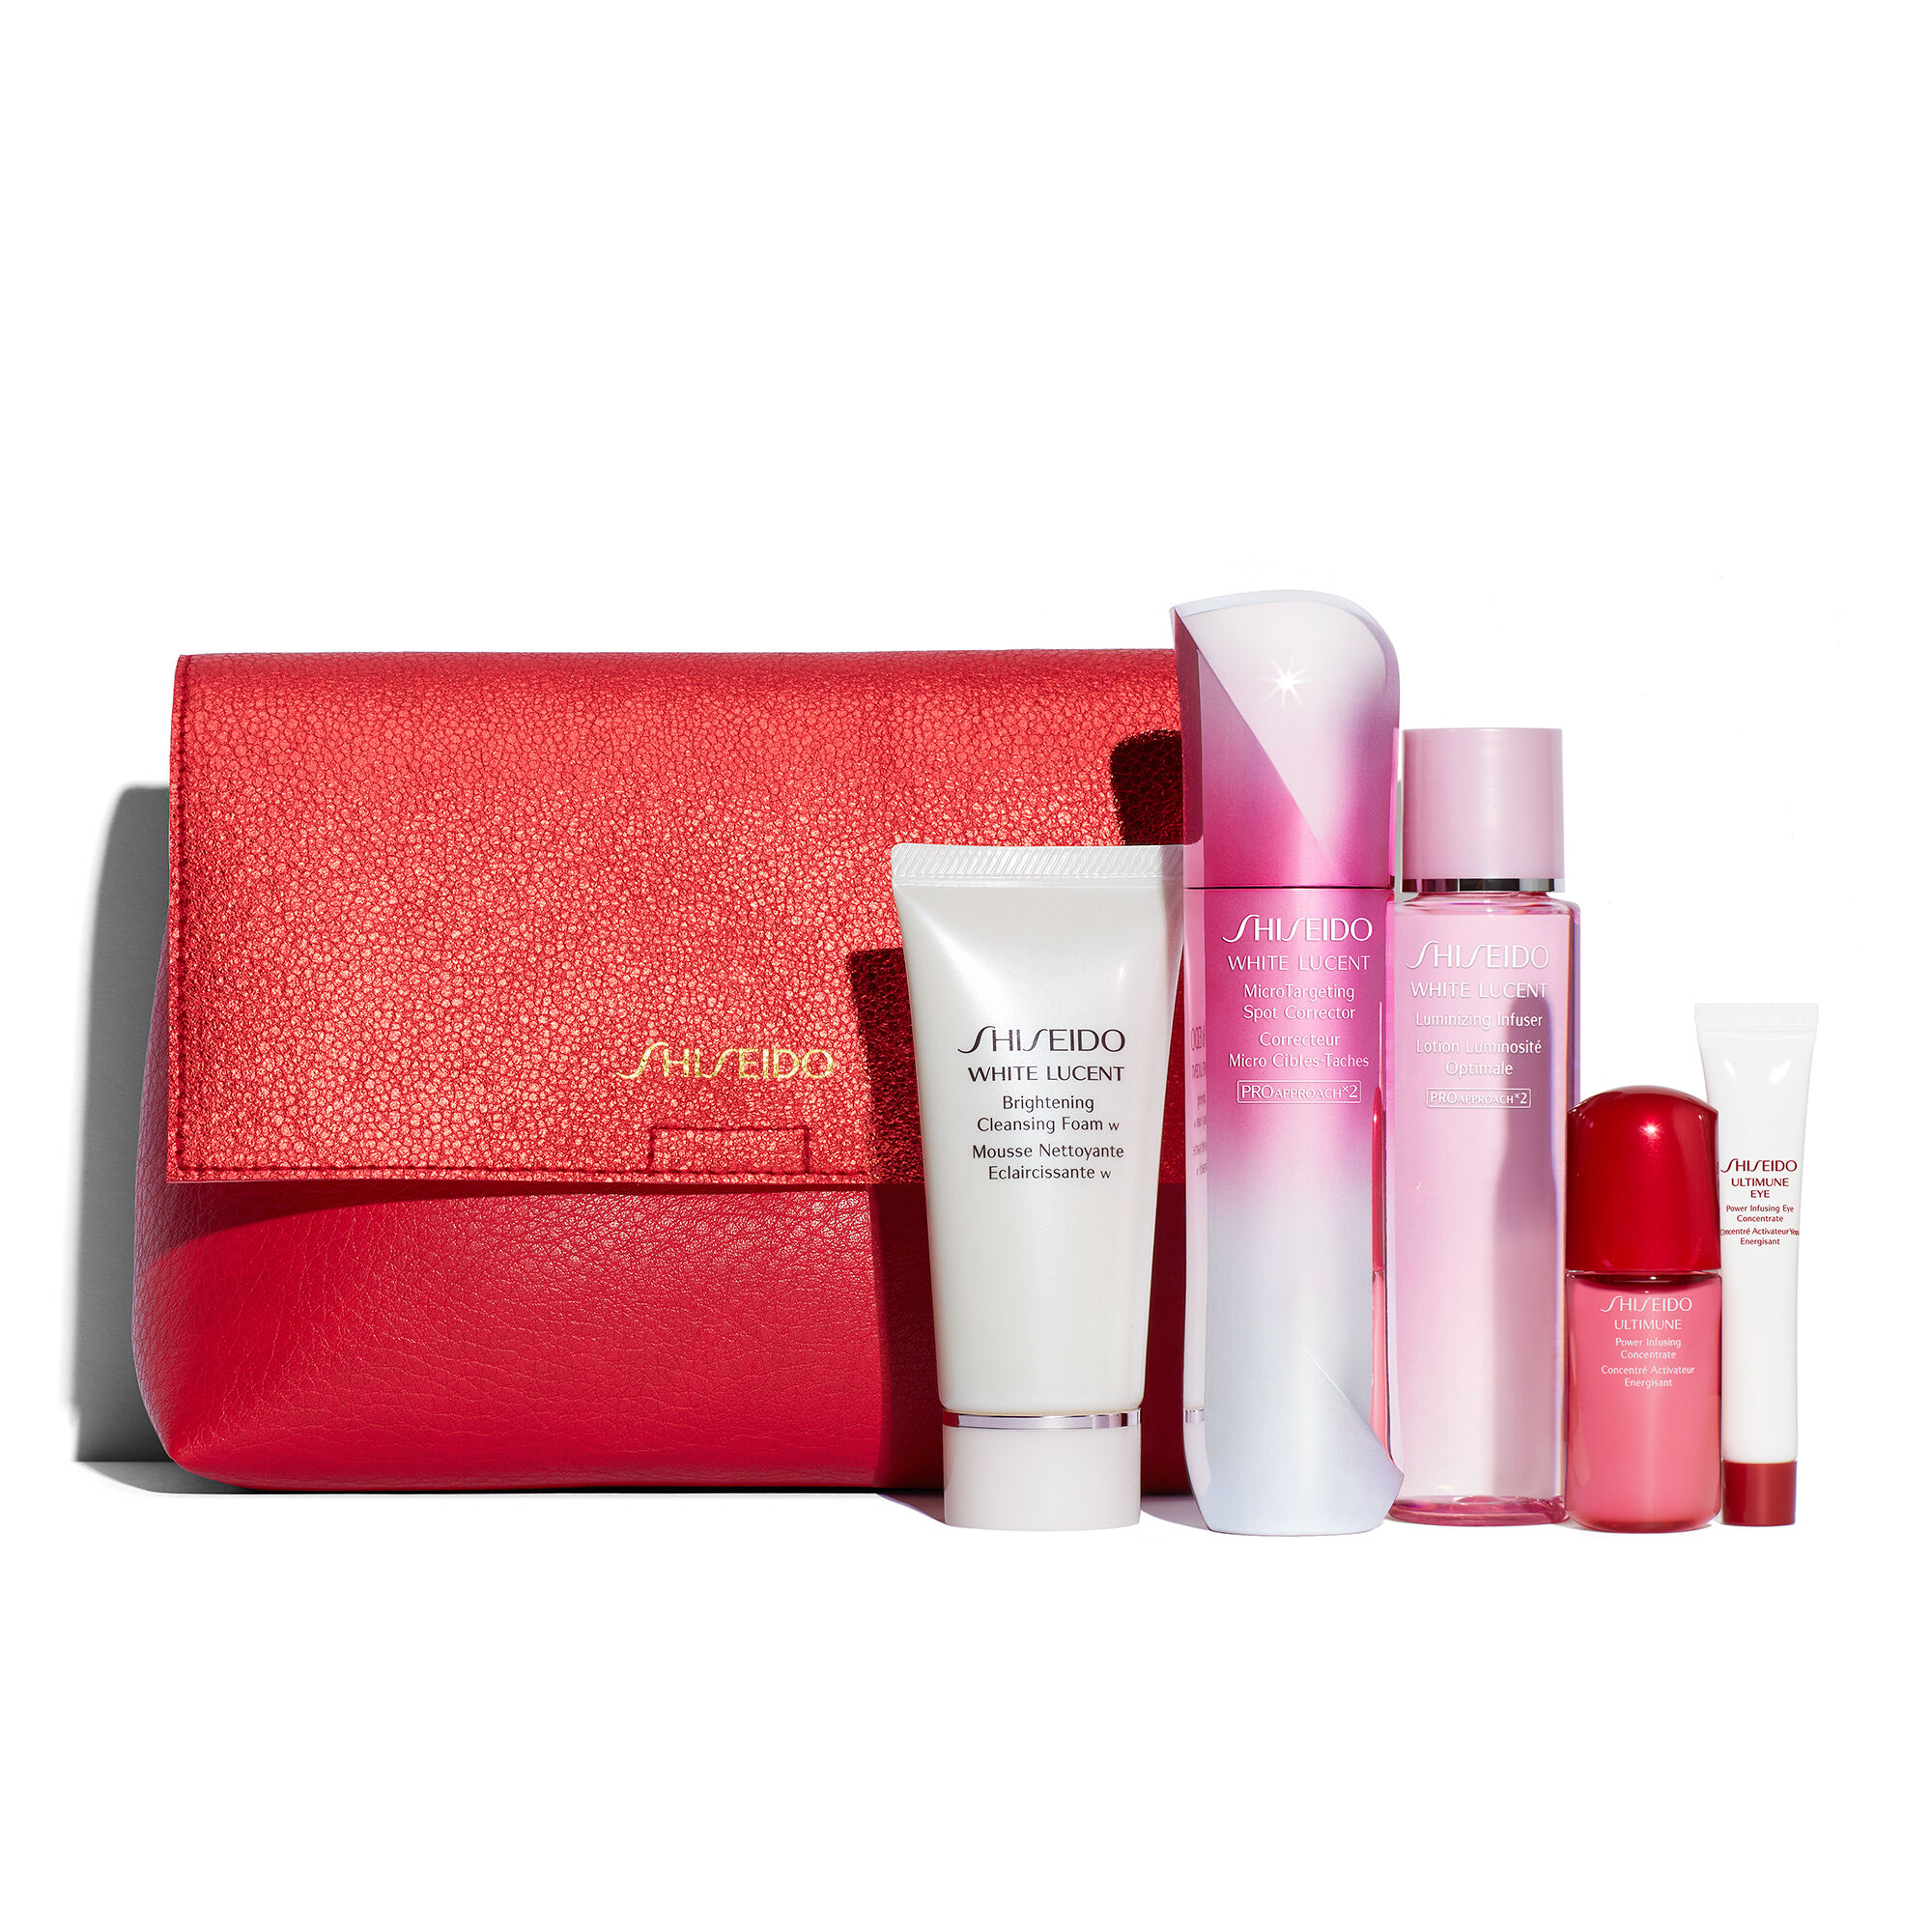 Pro Brightening Set (un valor de -$258,